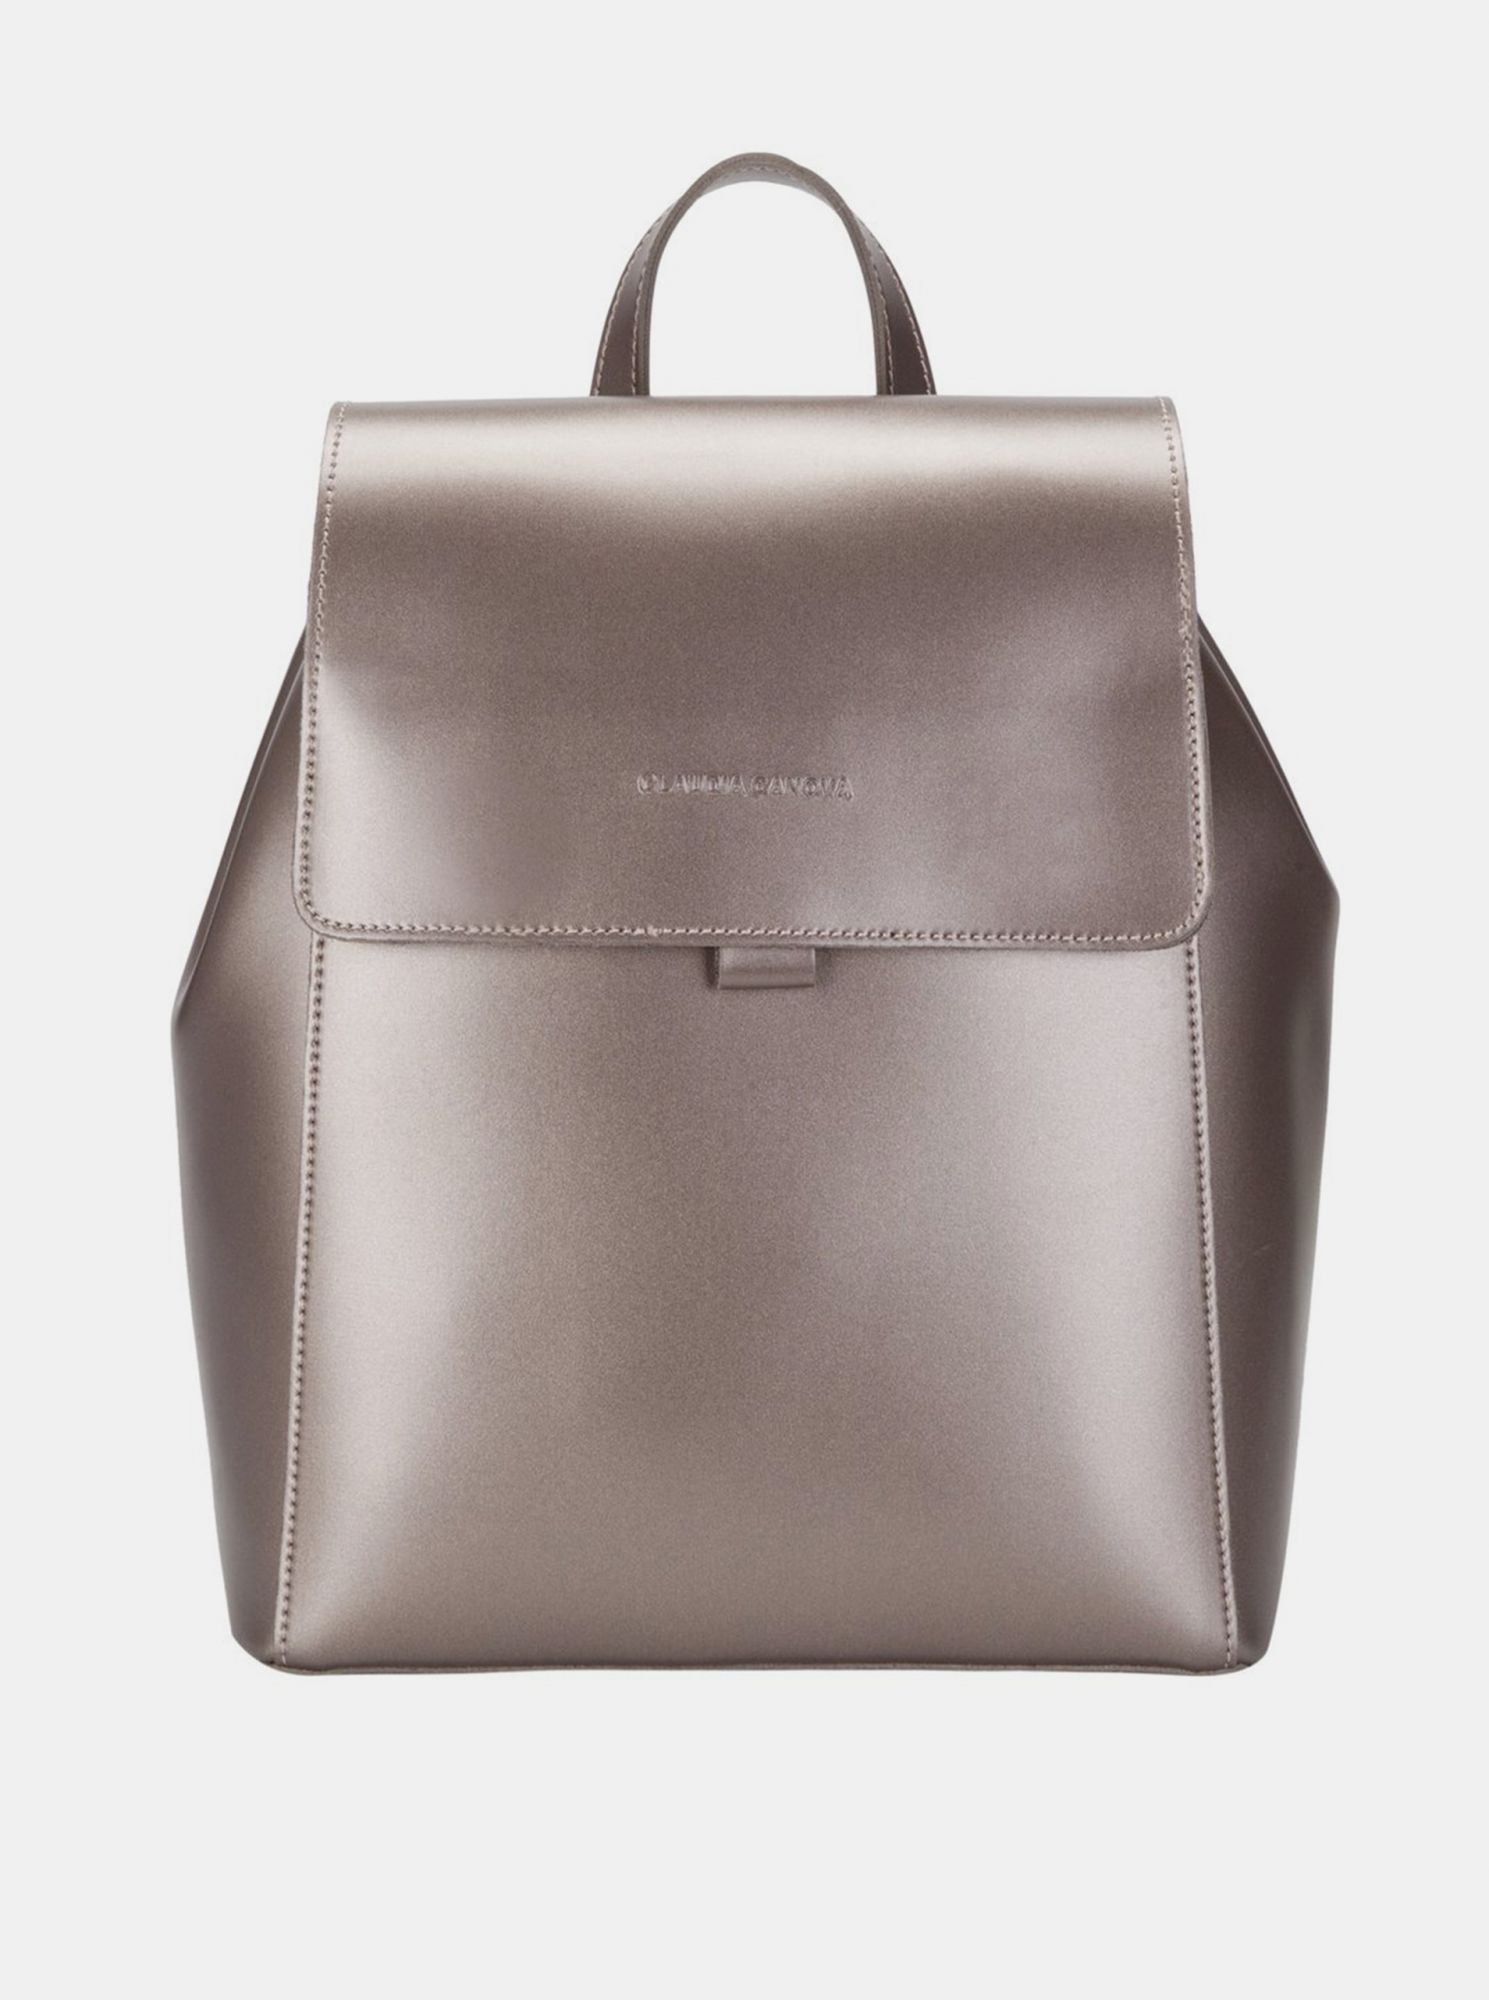 Backpack in gold color by Claudia Canova